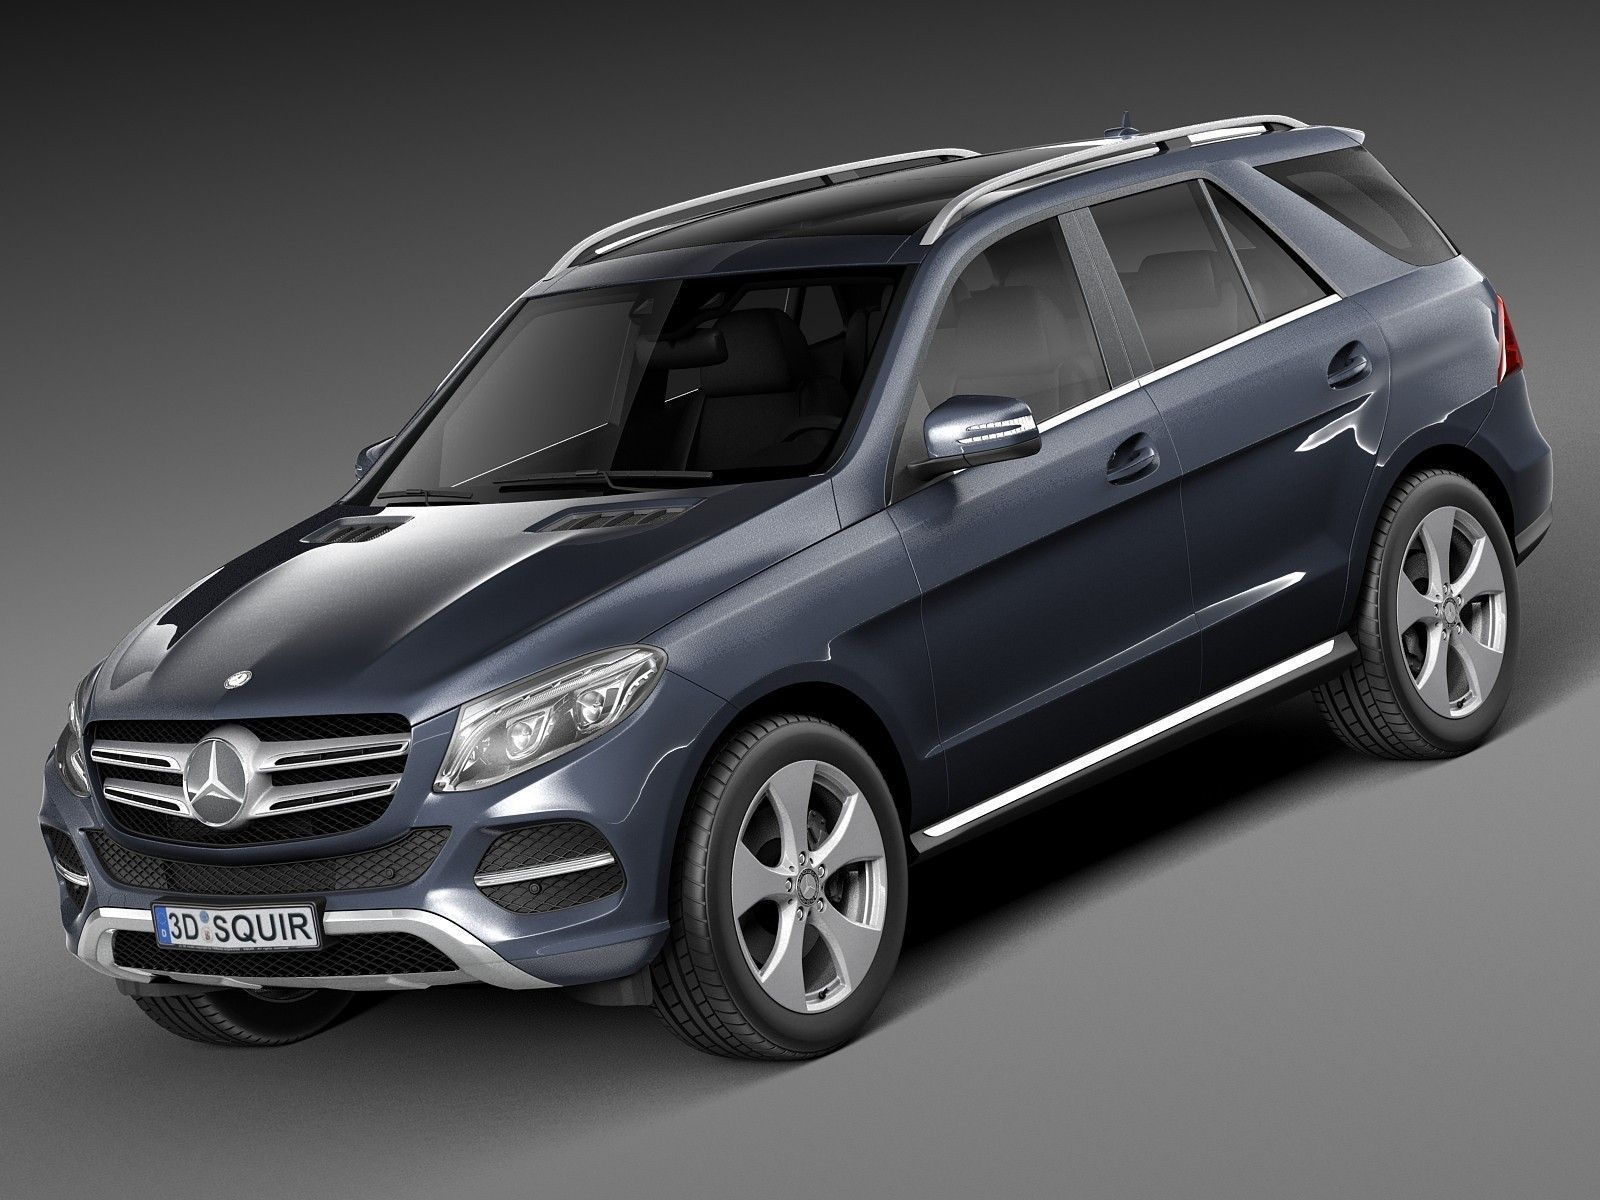 mercedes benz gle 2016 3d model max obj 3ds fbx c4d lwo lw